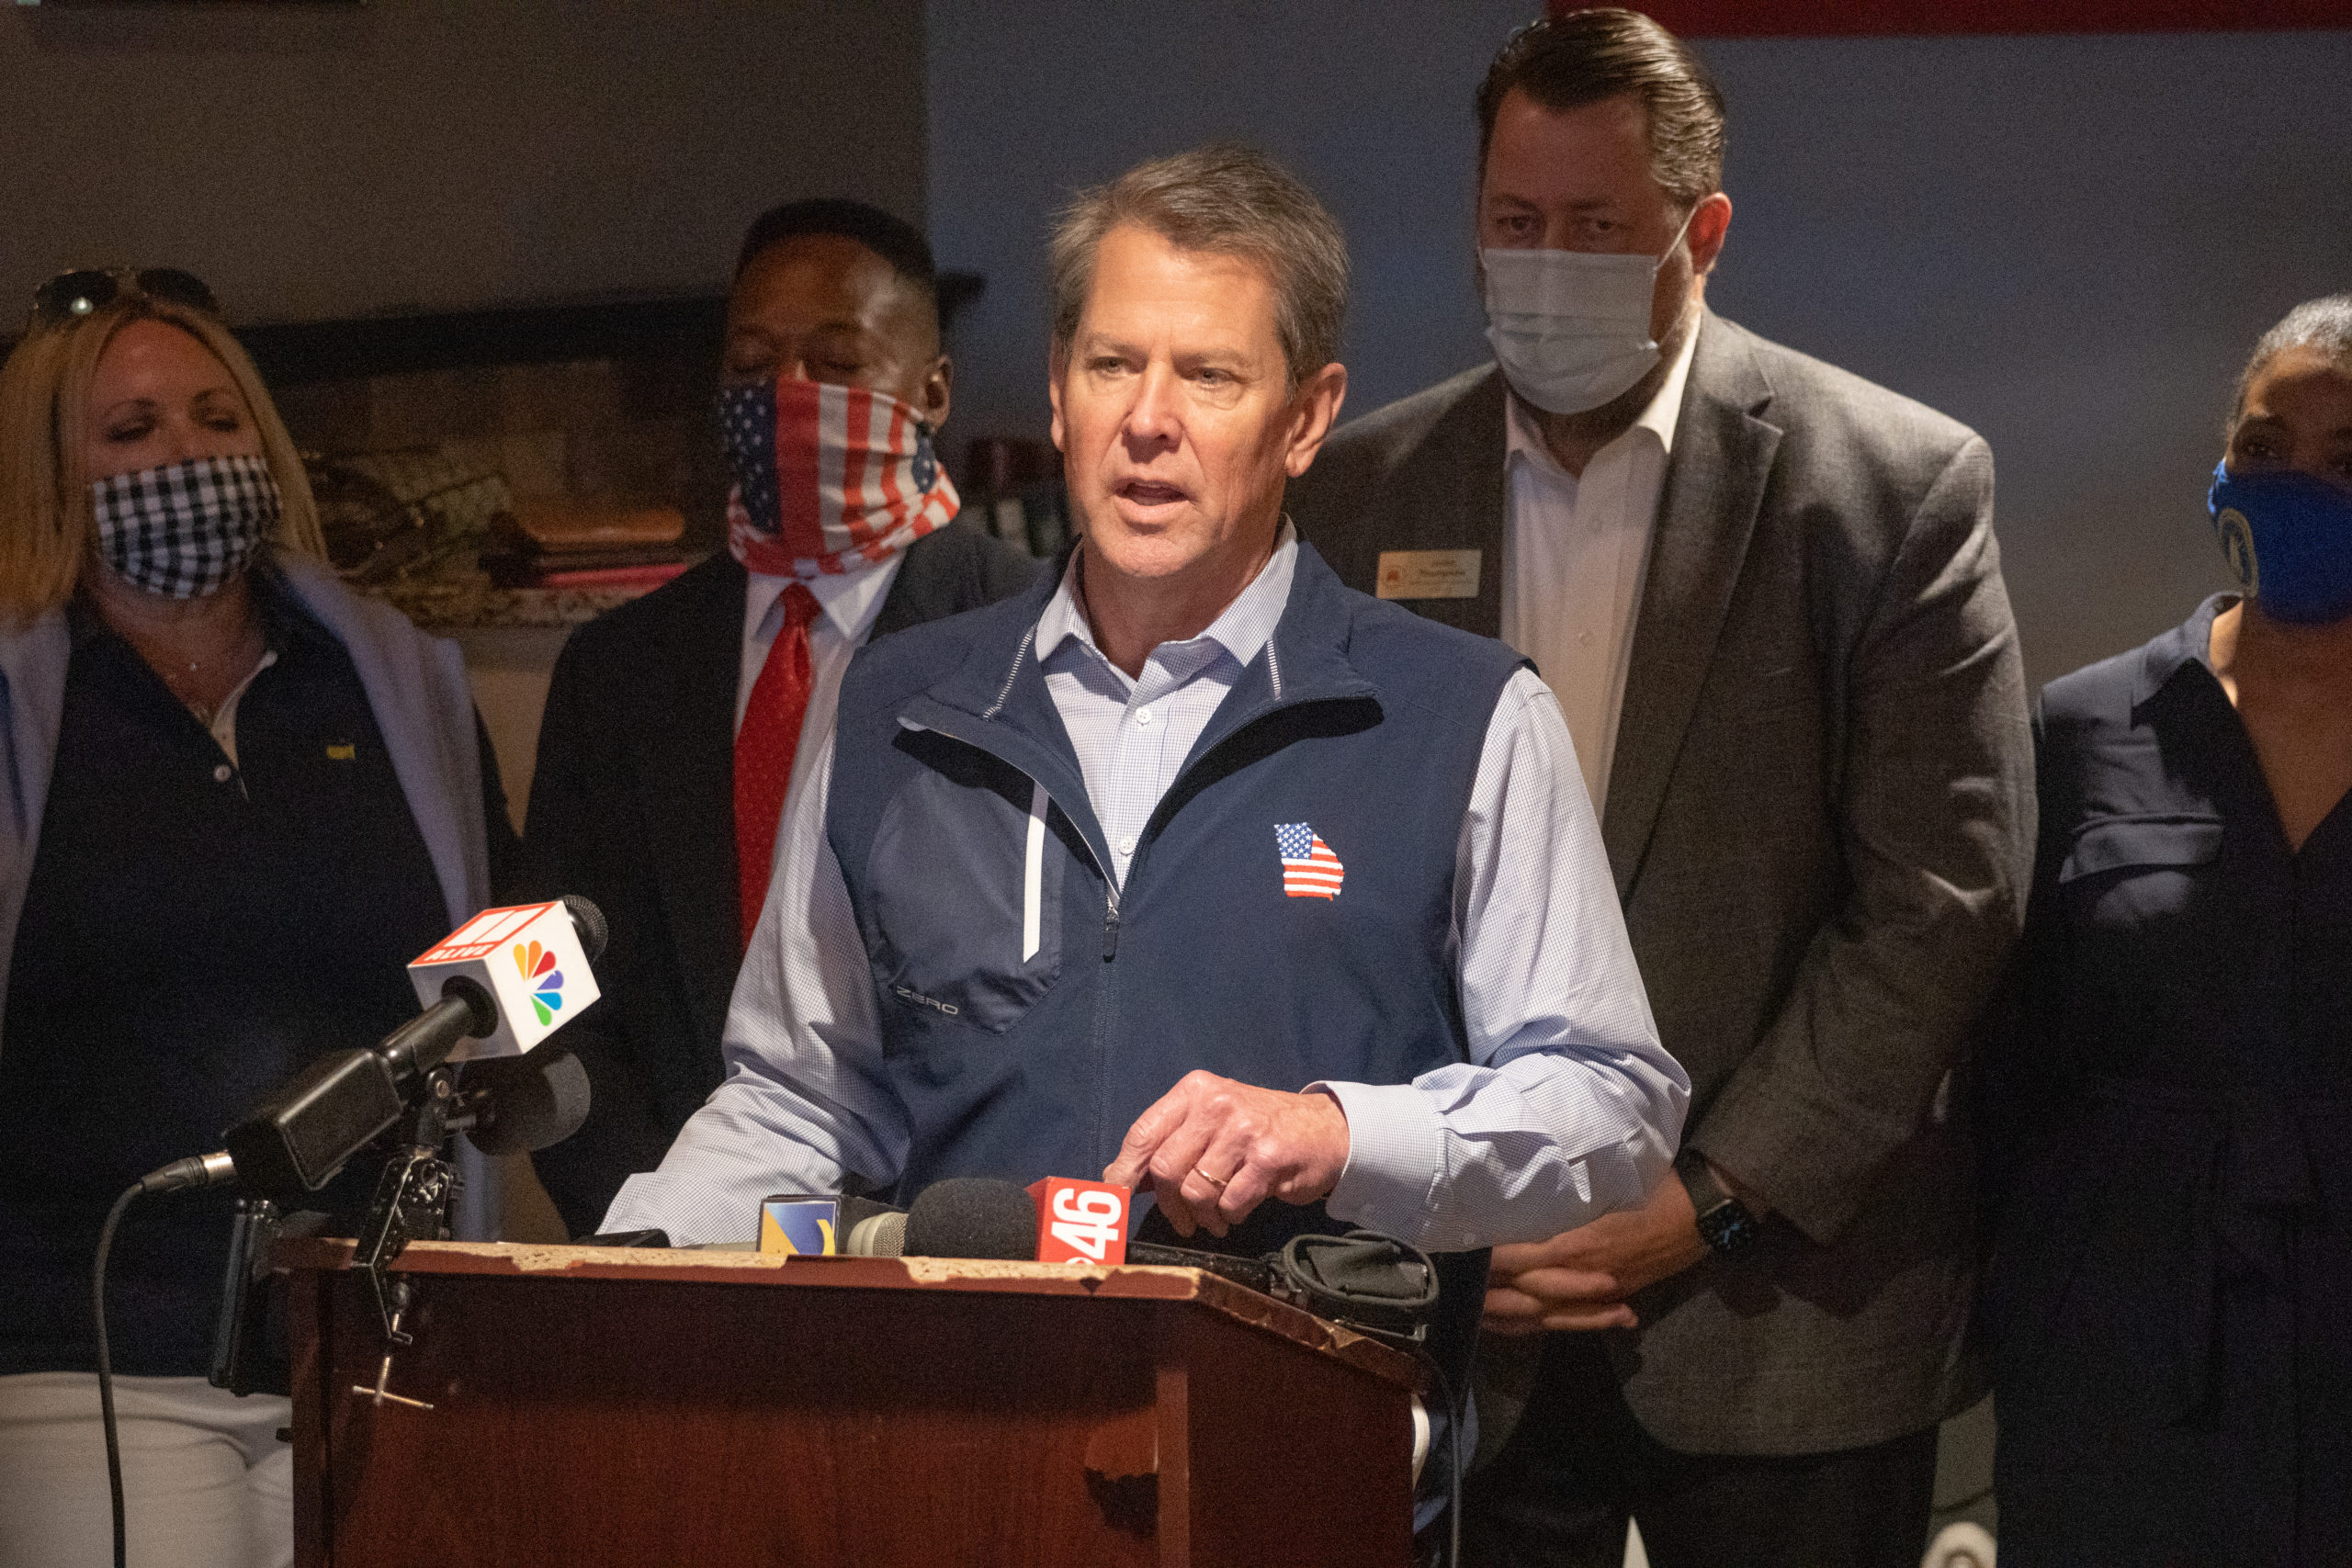 Georgia Gov. Brian Kemp speaks at a news conference about the state's new Election Integrity Law on April 10. (Megan Varner/Getty Images)